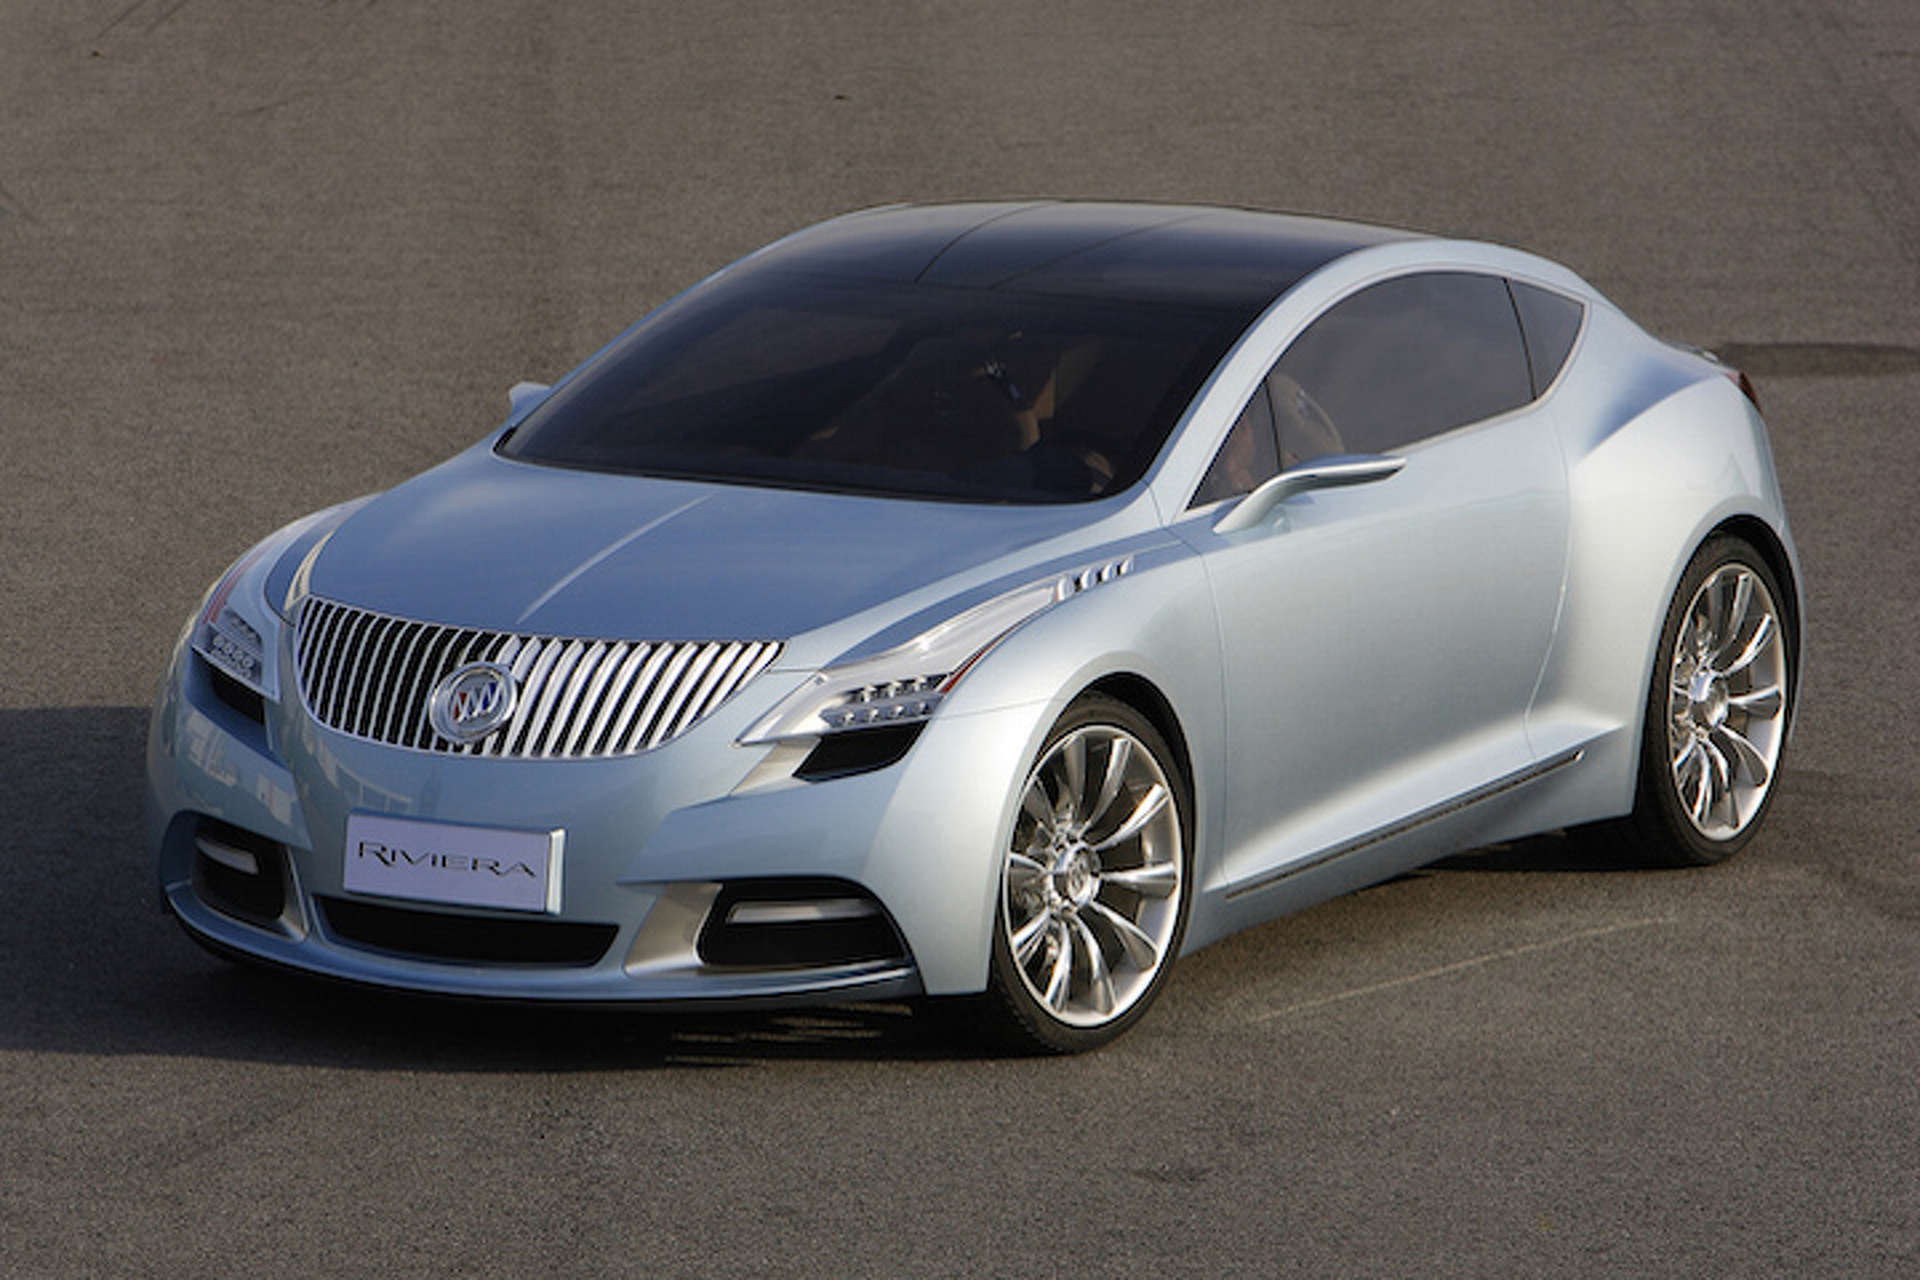 New Buick Cars >> New Buick Sports Car Concept Aims To Attract Younger Buyers